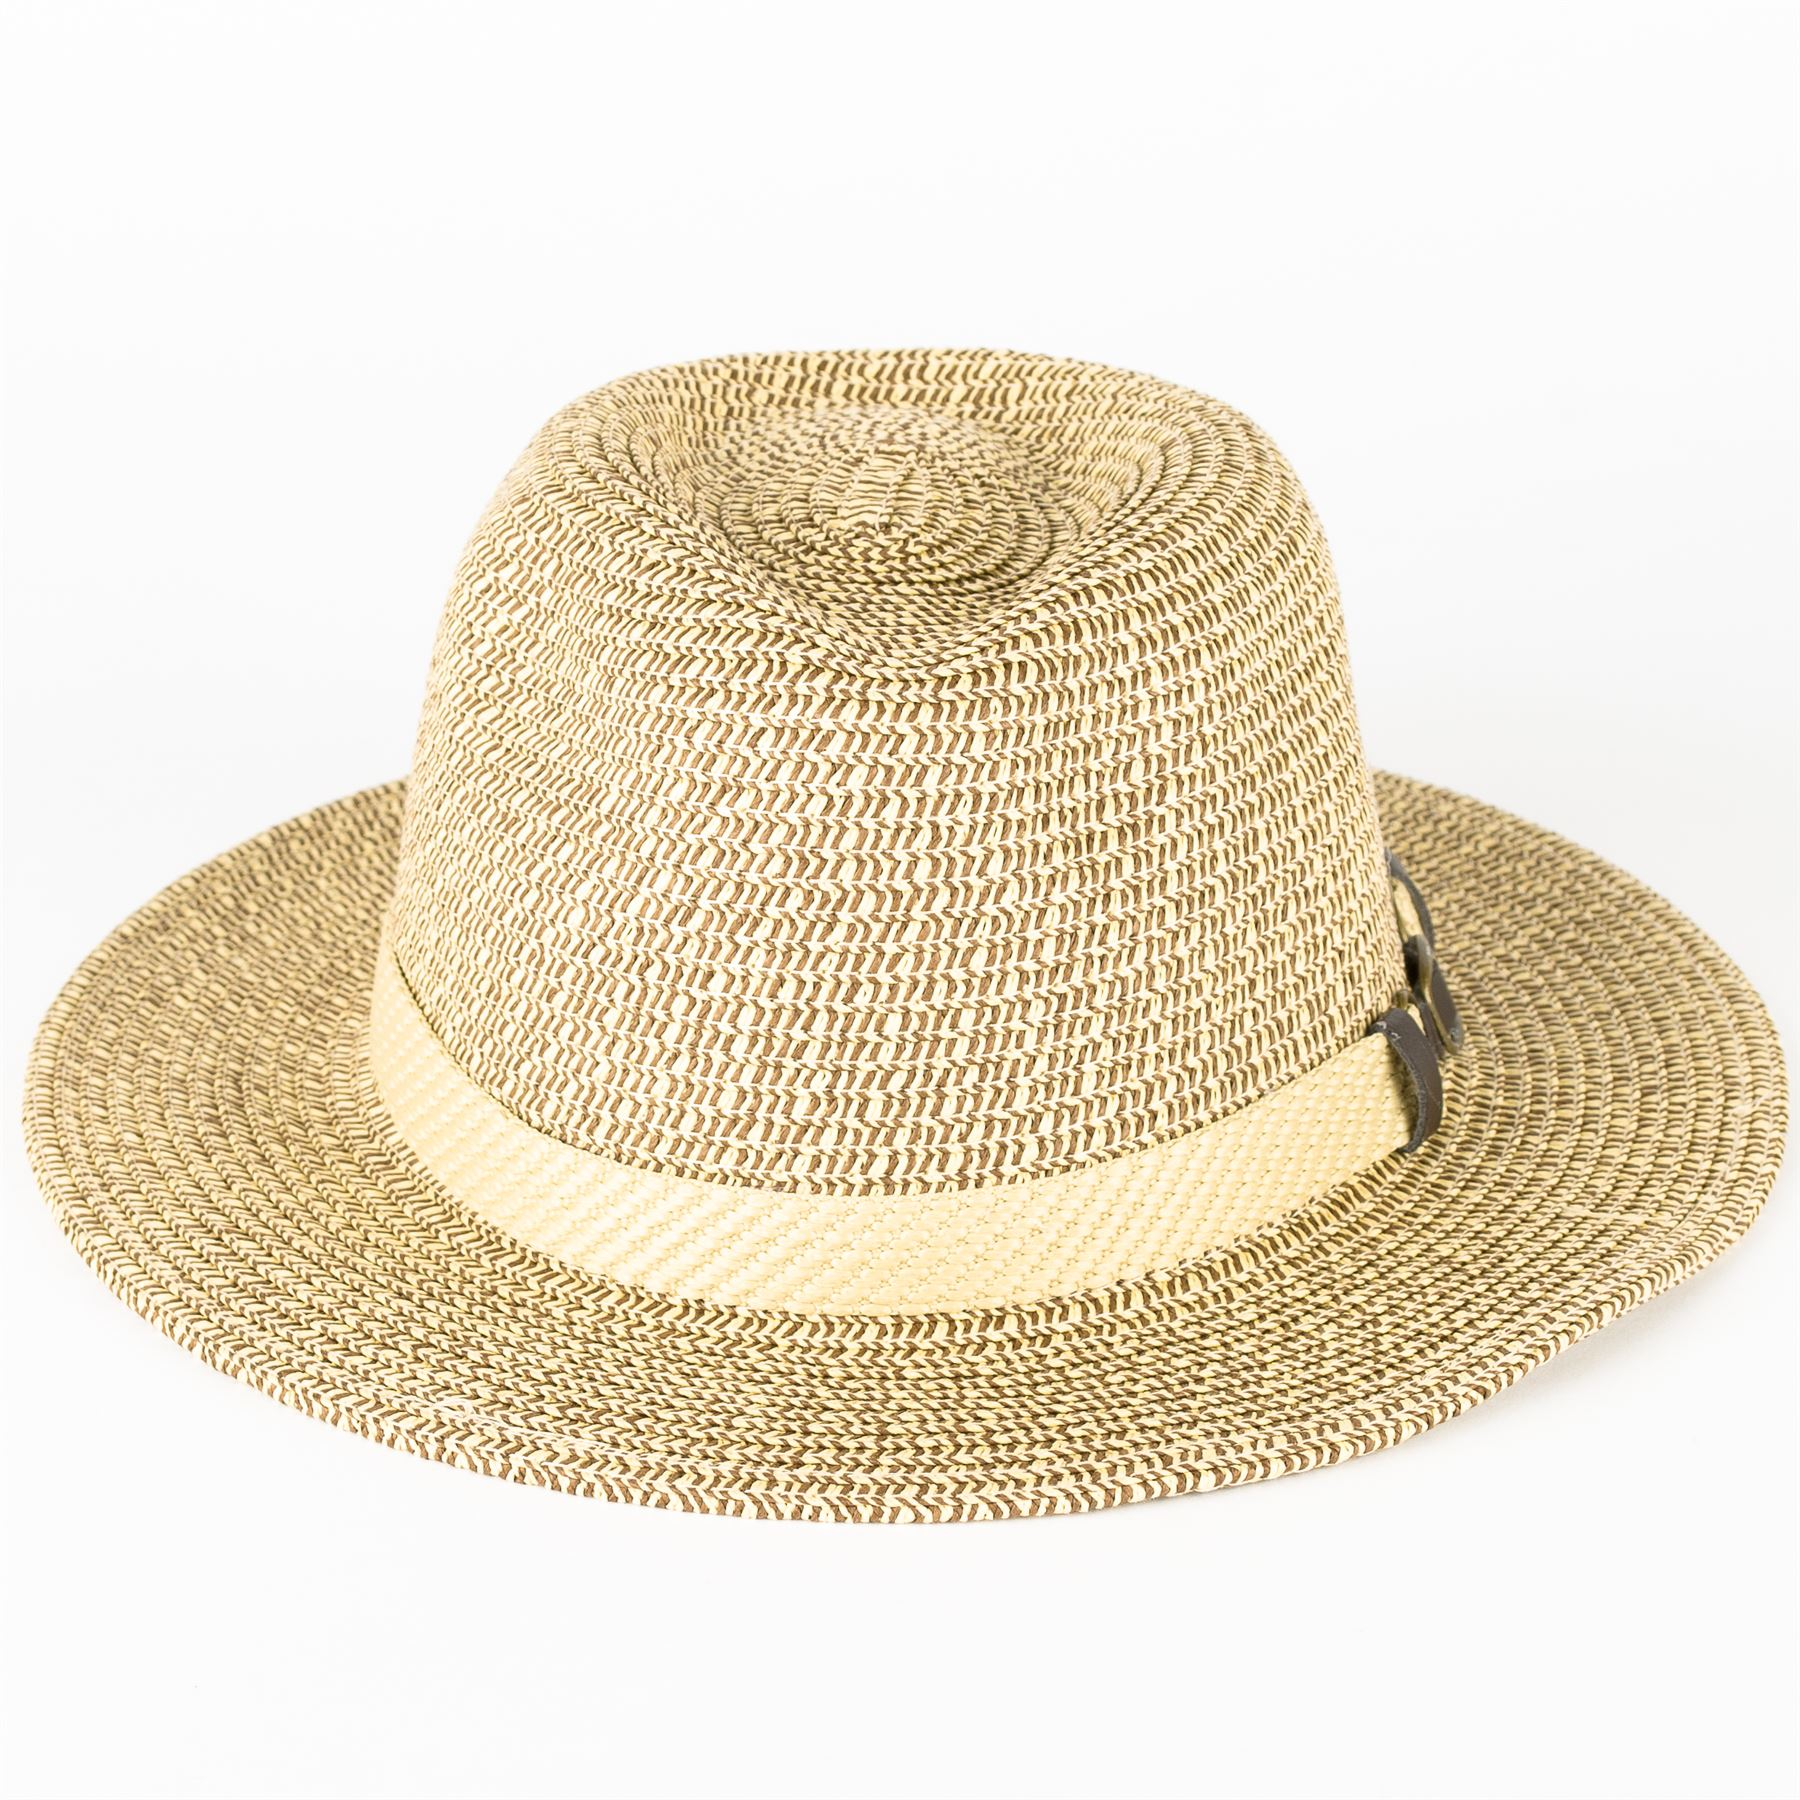 Buckle Hats: Straw Fedora Hat With Buckle Band